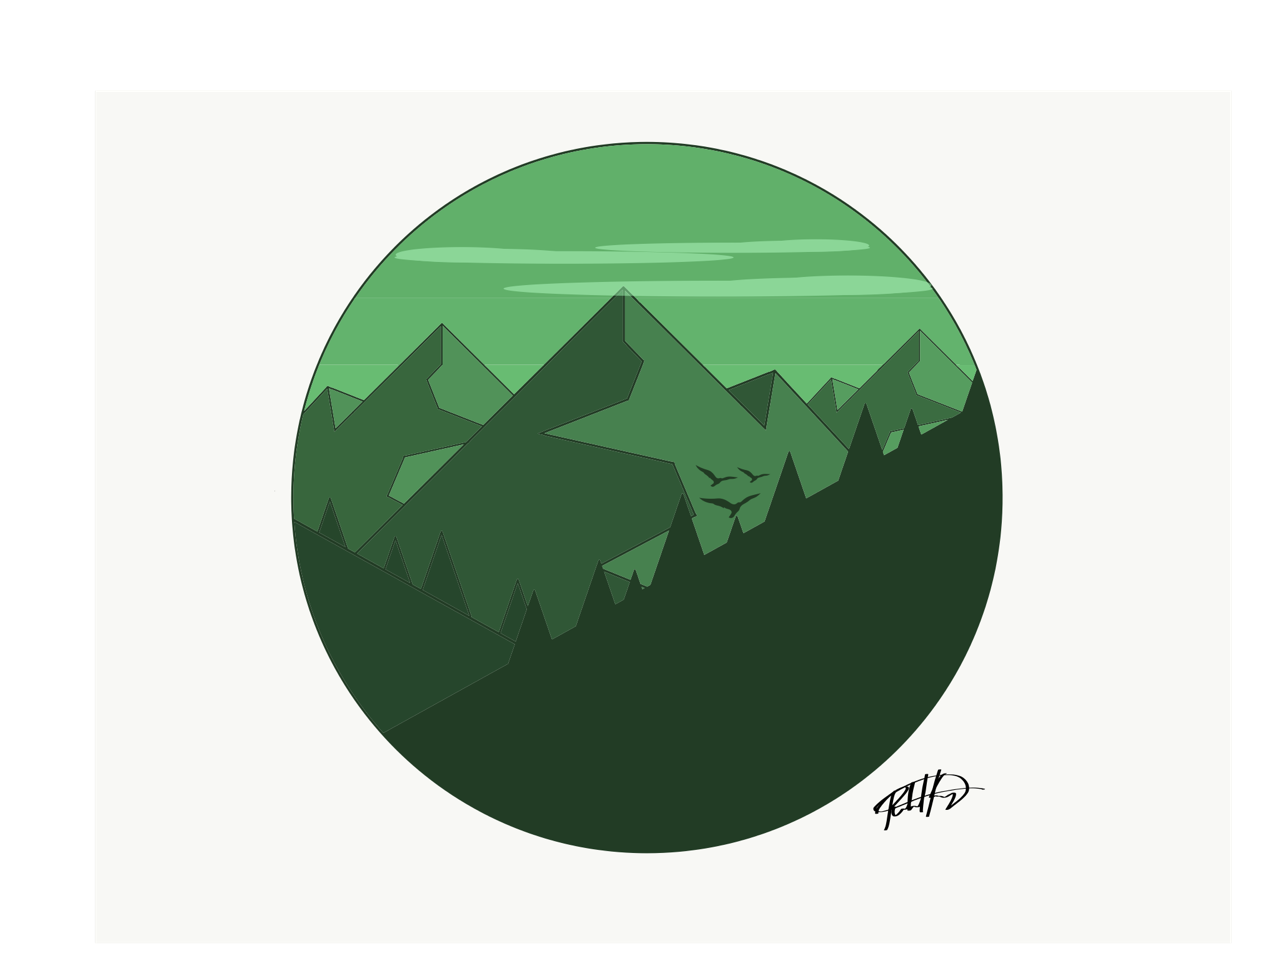 Moutain vector flat. Landscape instagram tumblr richkenneyart